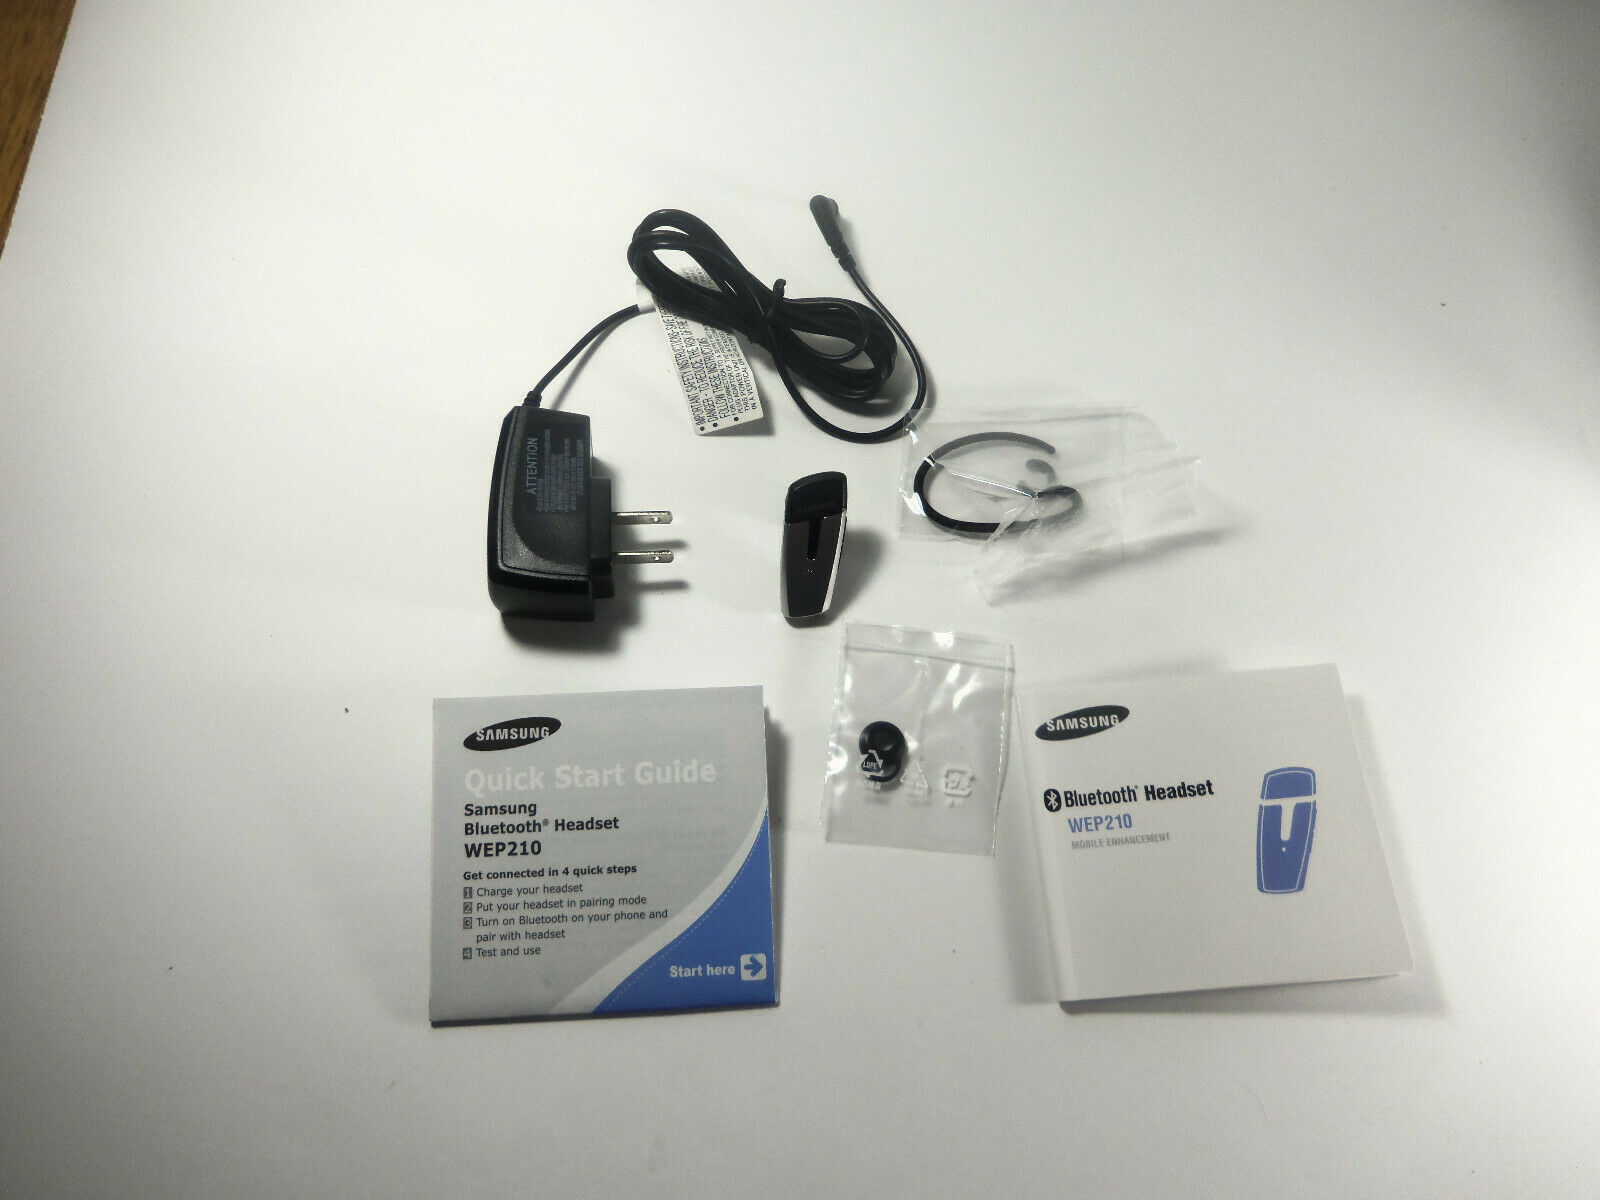 Samsung Wep210 Bluetooth Headset Supm82733 Factory Great Find Wow For Sale Online Ebay